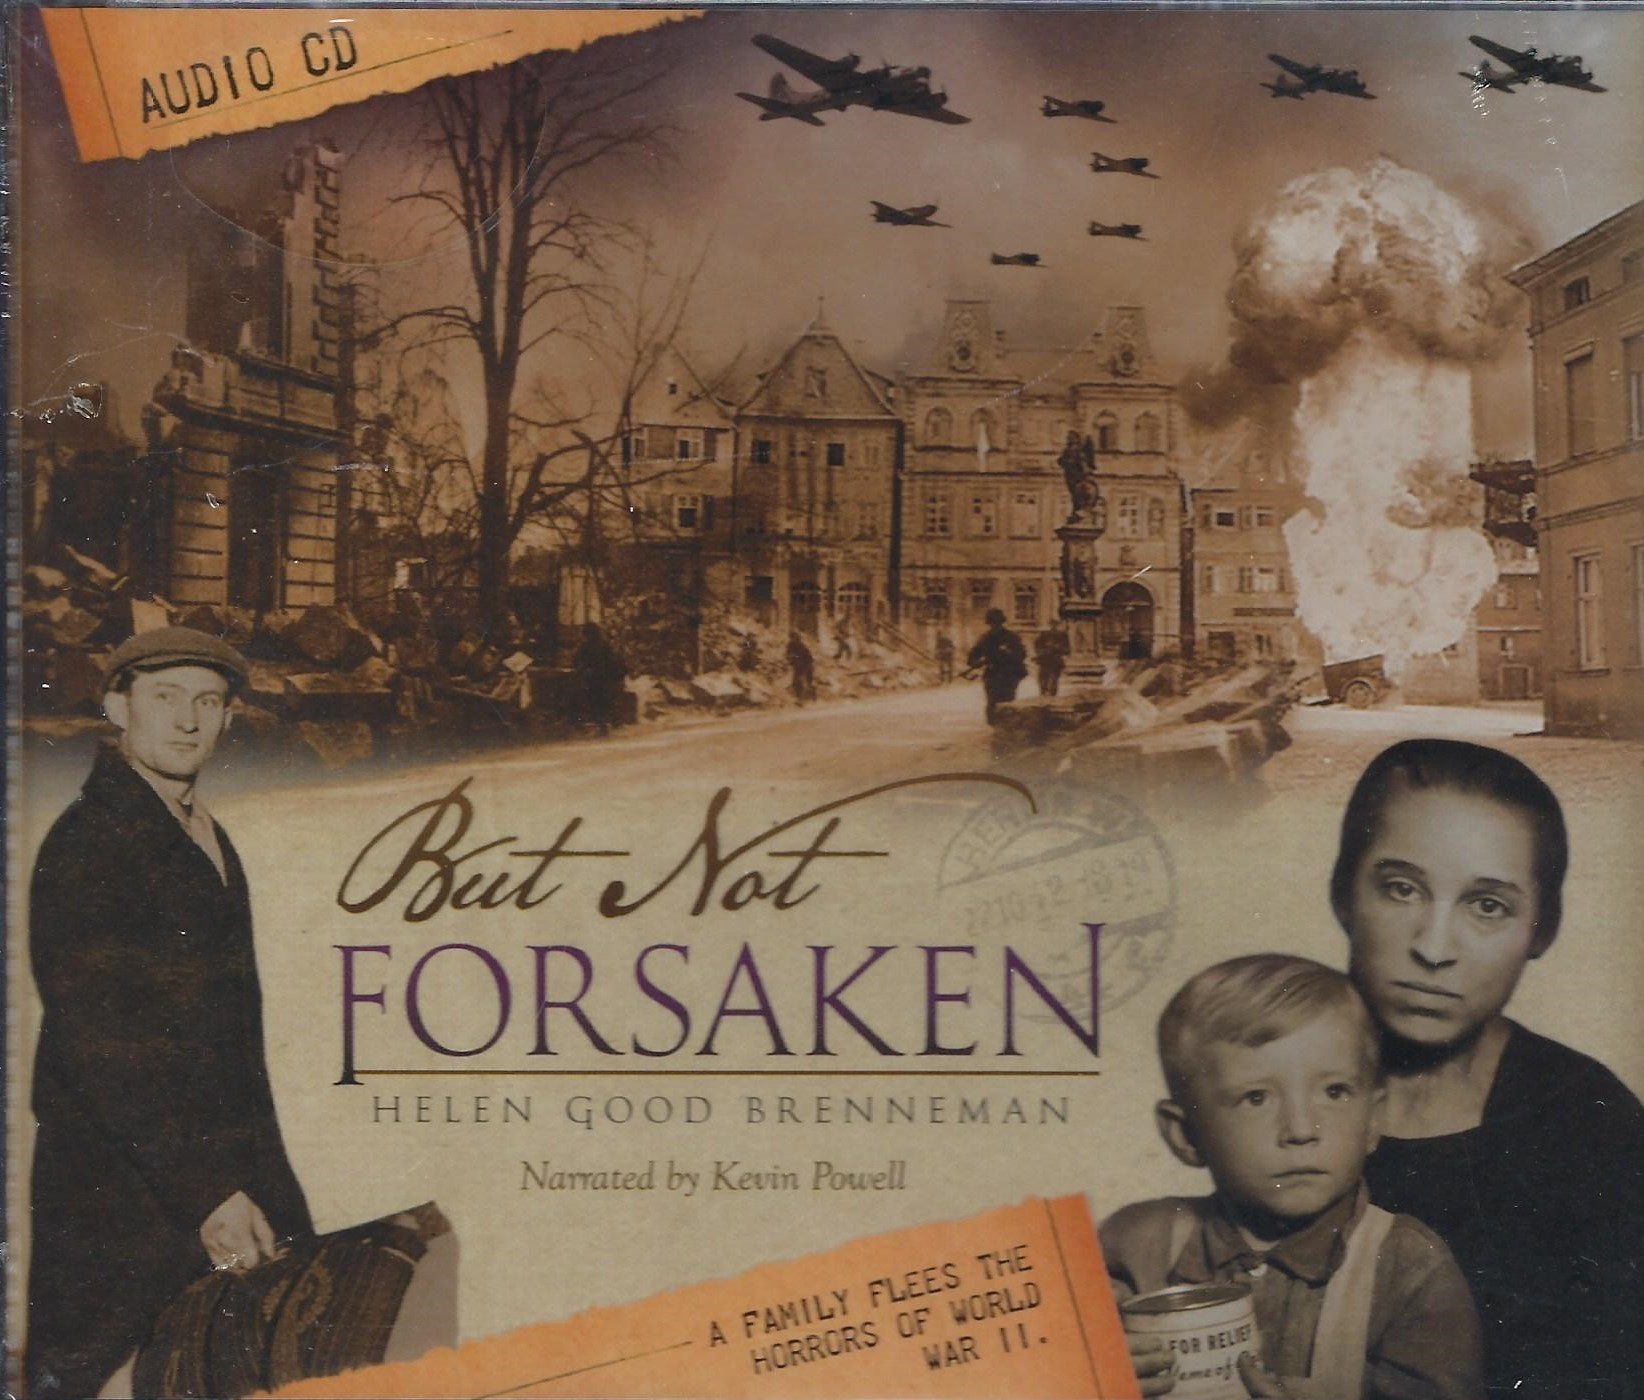 BUT NOT FORSAKEN Audiobook Helen Good Brenneman